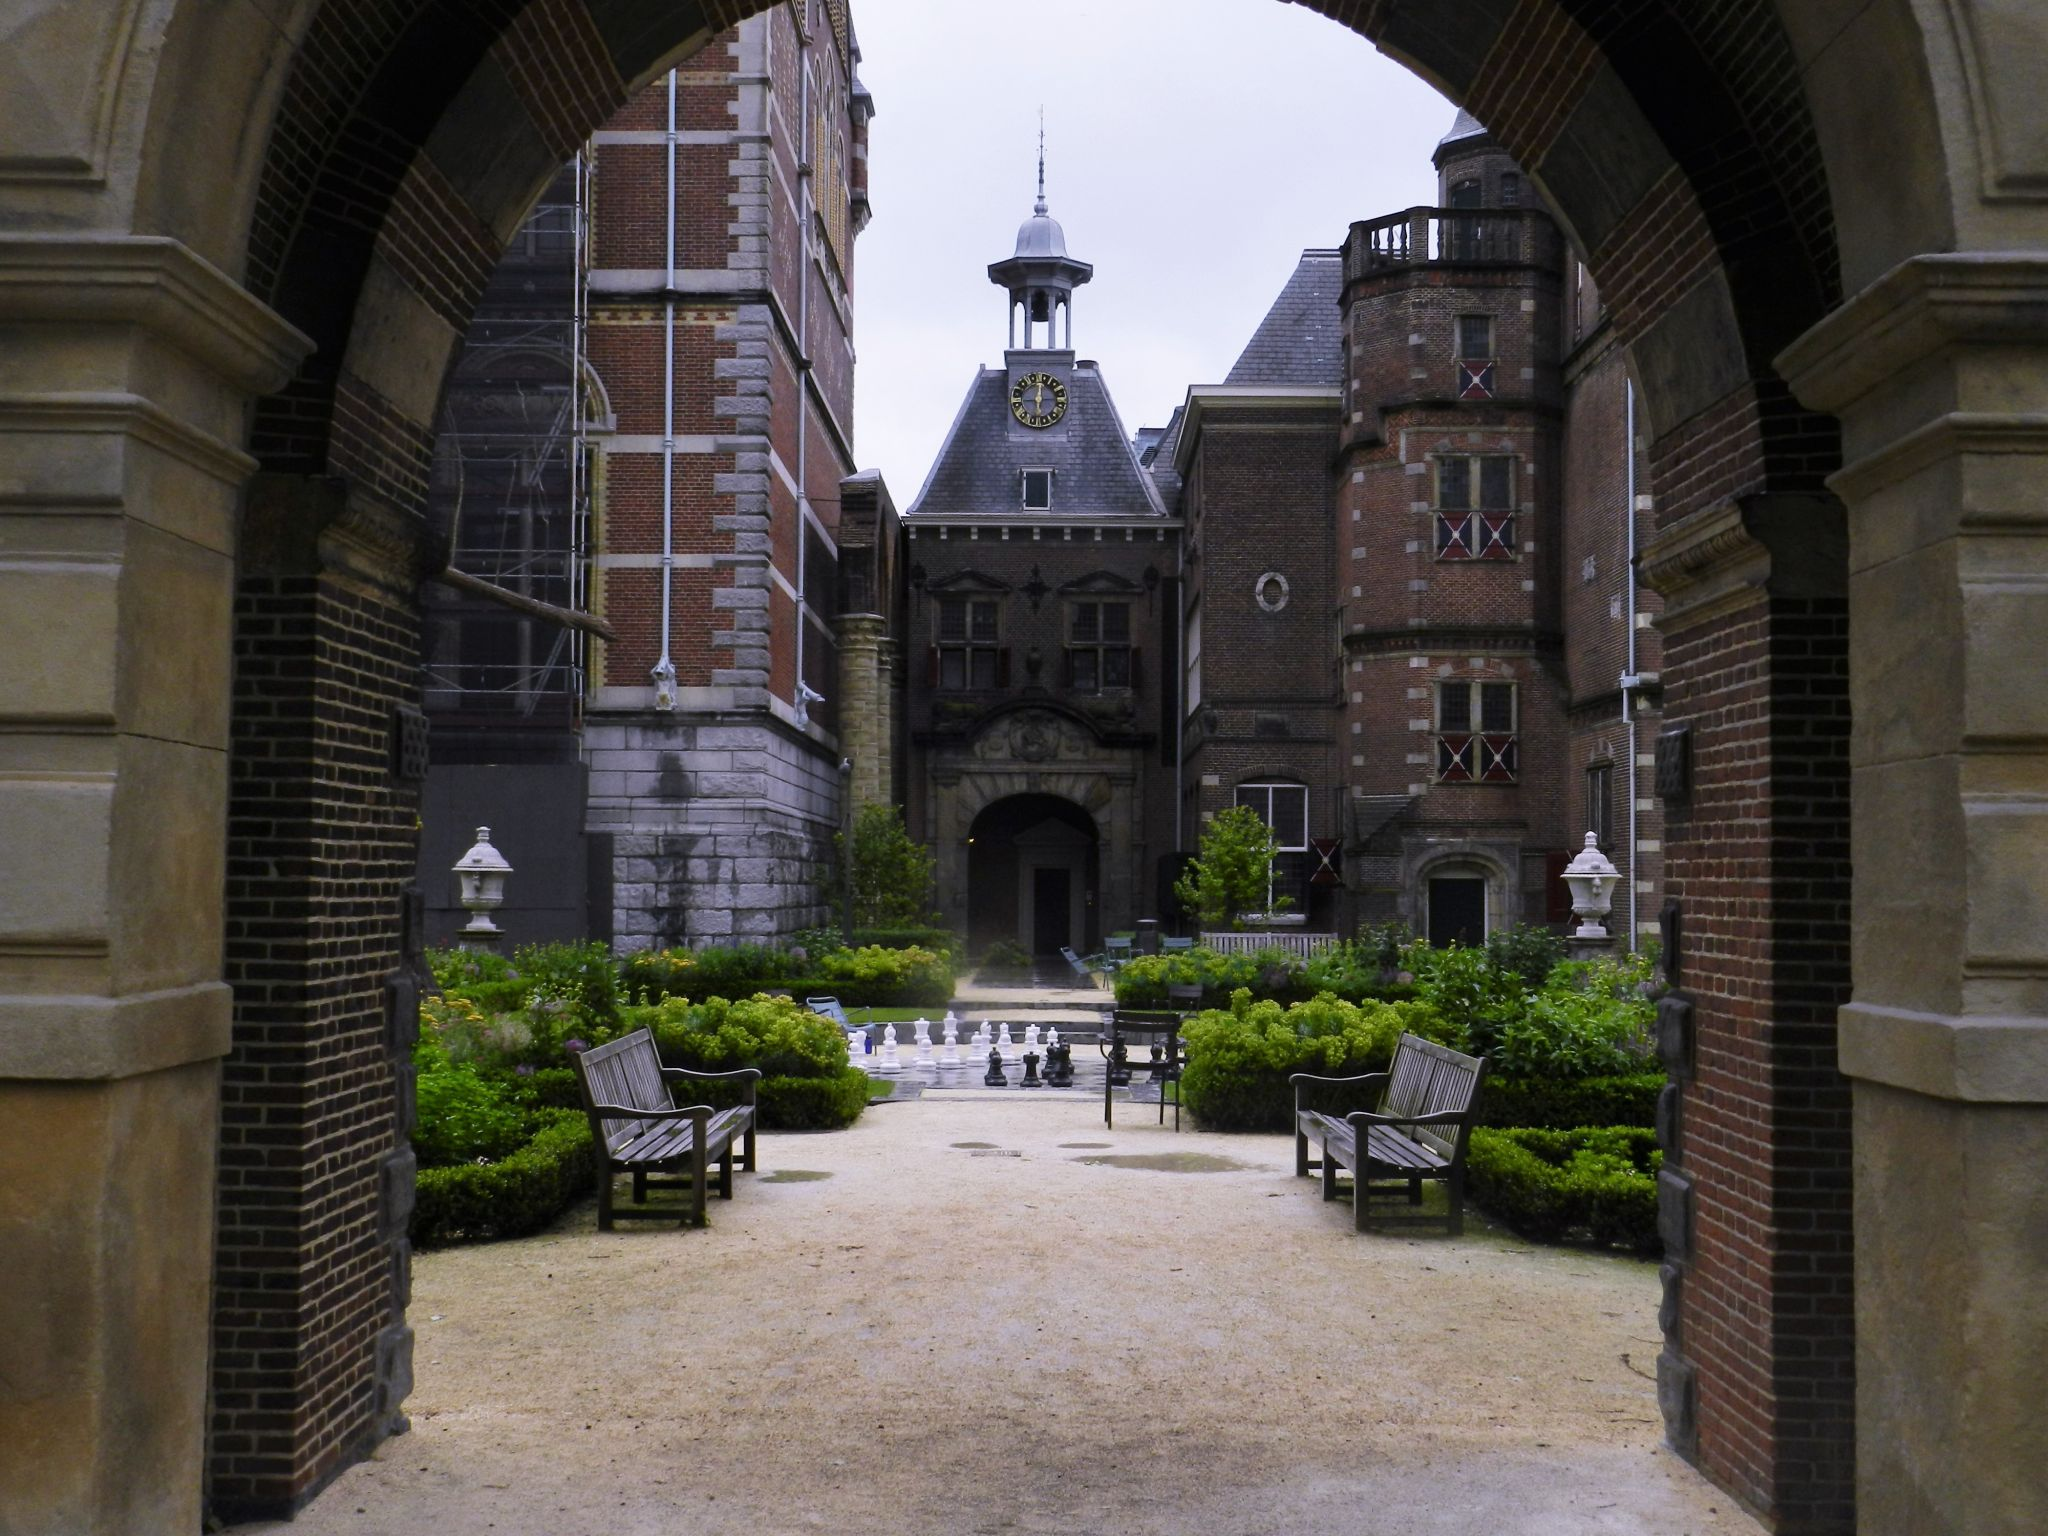 A game of chess, Netherlands